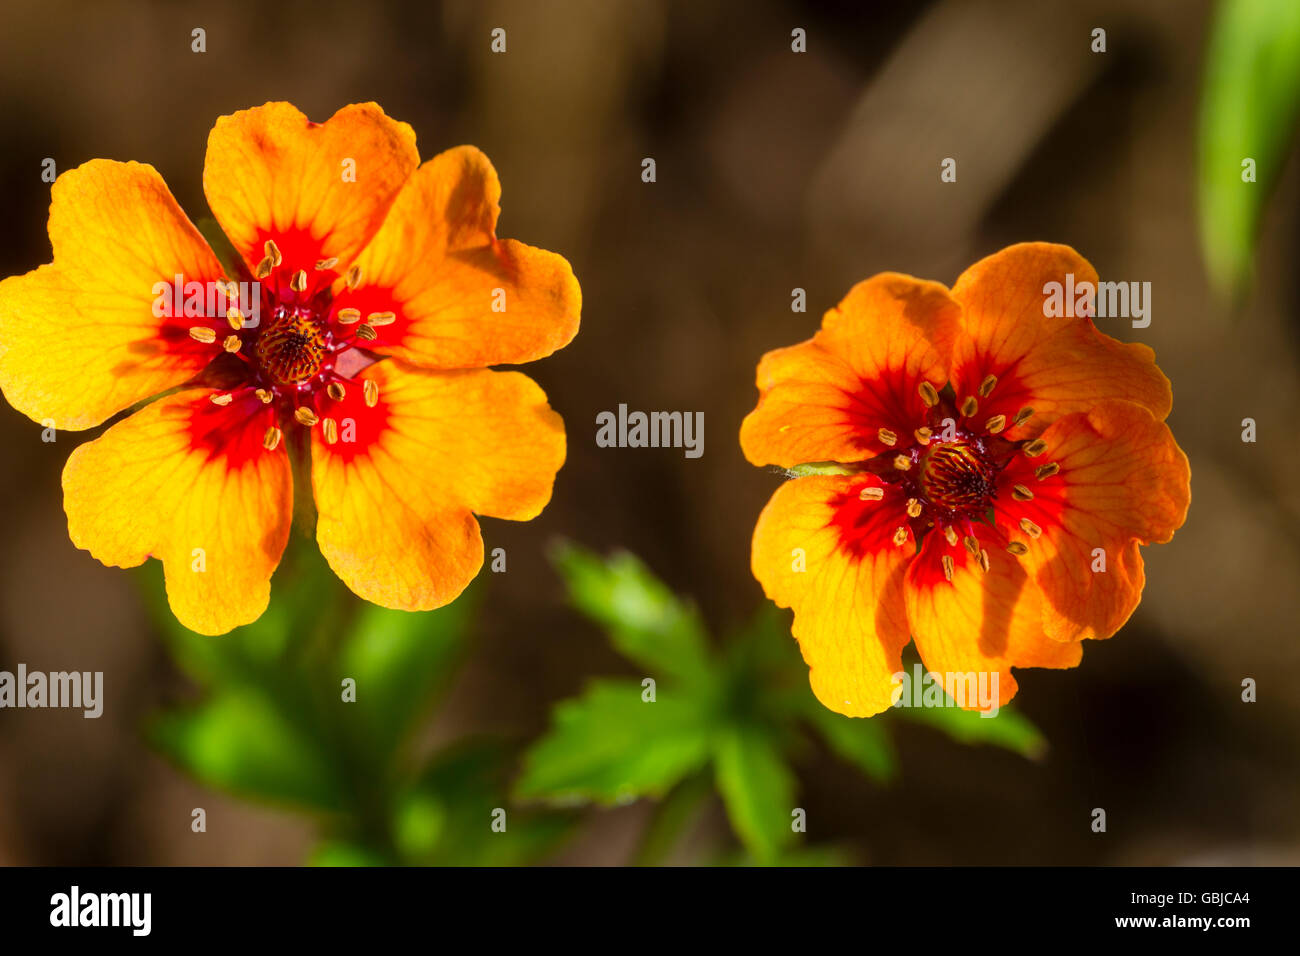 Two flowers of the dwarf, spreading, summer flowering perennial, Potentilla x tonguei - Stock Image